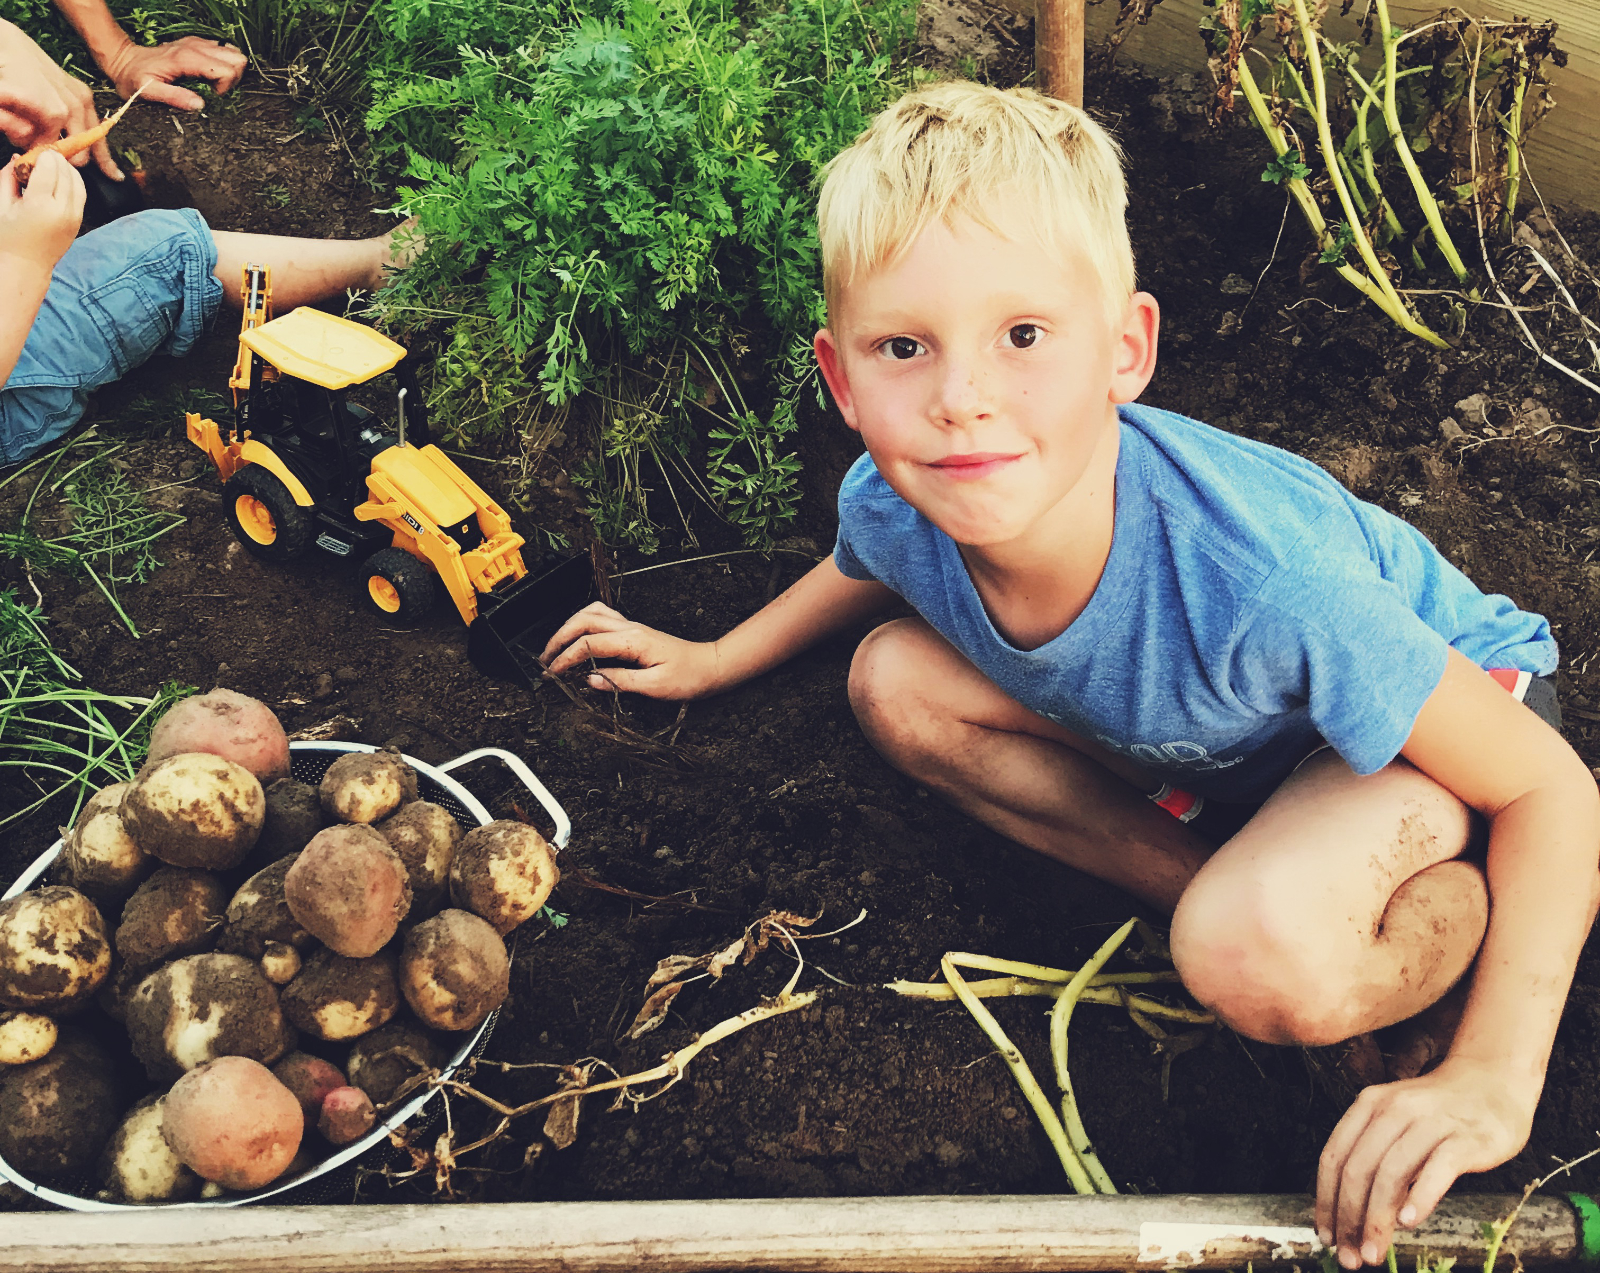 Healthy eating for kids. 4 things to keep in mind while trying to get your kids to eat healthy with Brooke Freeman, nutritional health coach and founder of nonprofit Natural Freedom Farm | For Animals For Earth